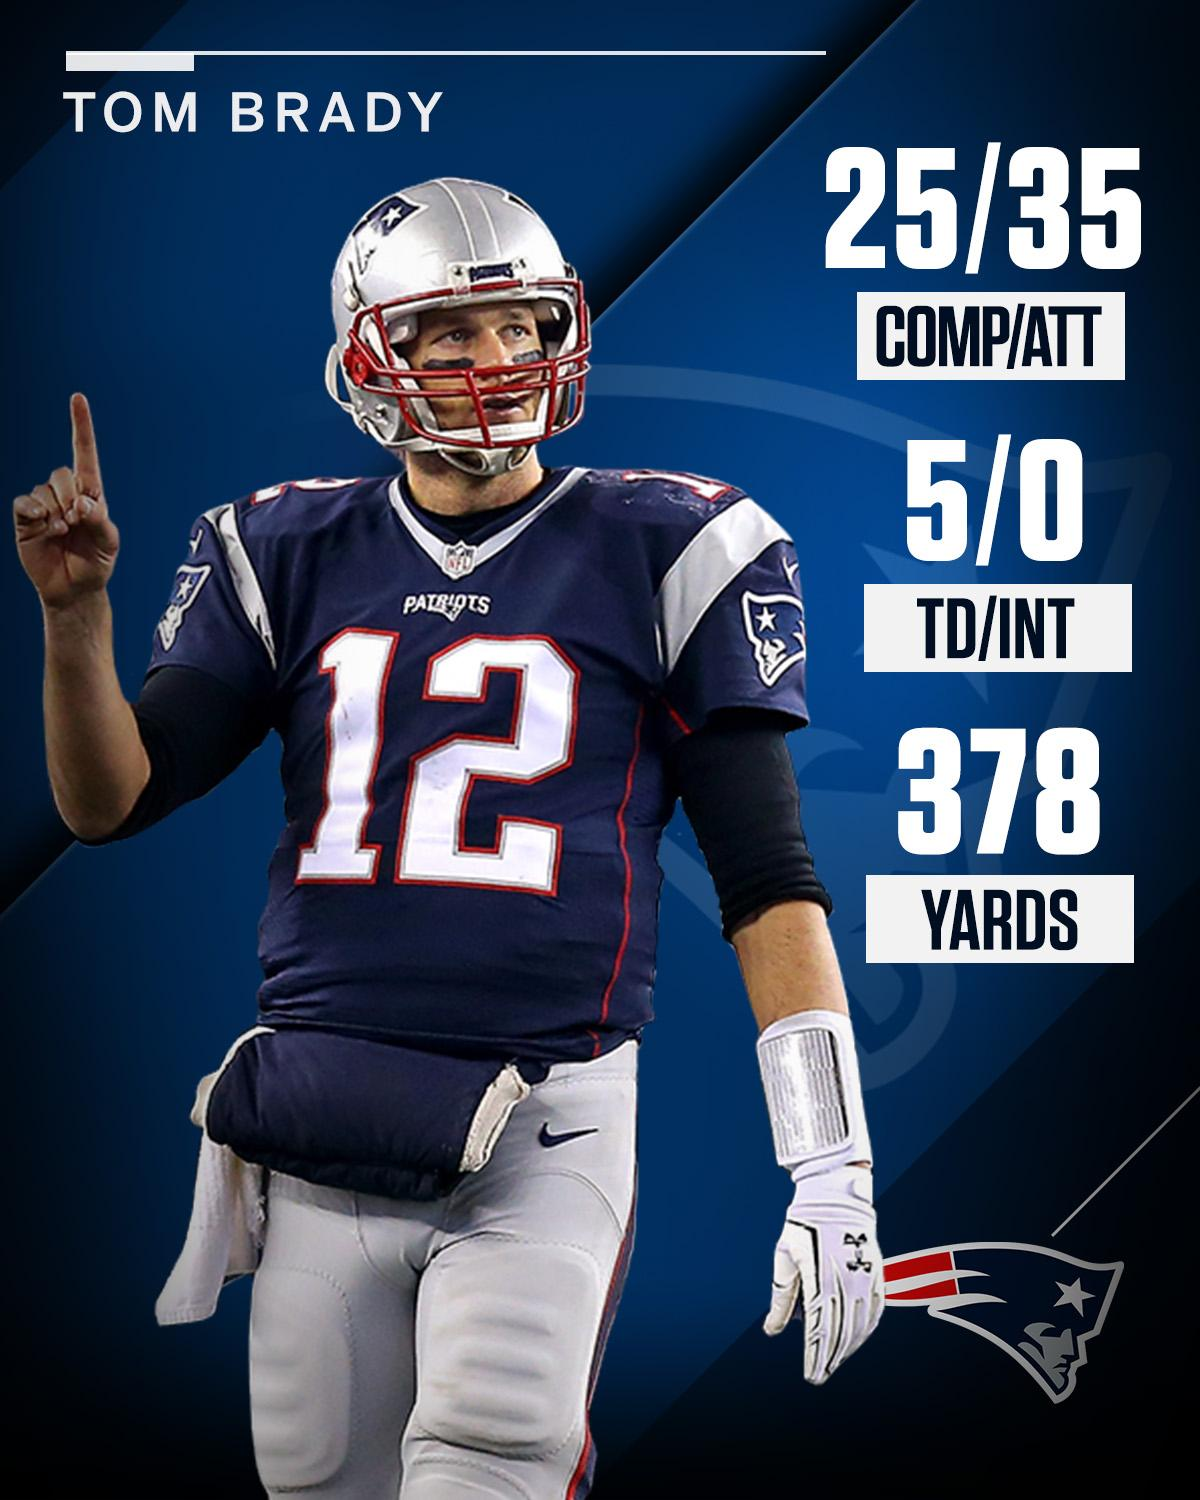 They call him TD Tom for a reason. https://t.co/UPRNgv8Kk0